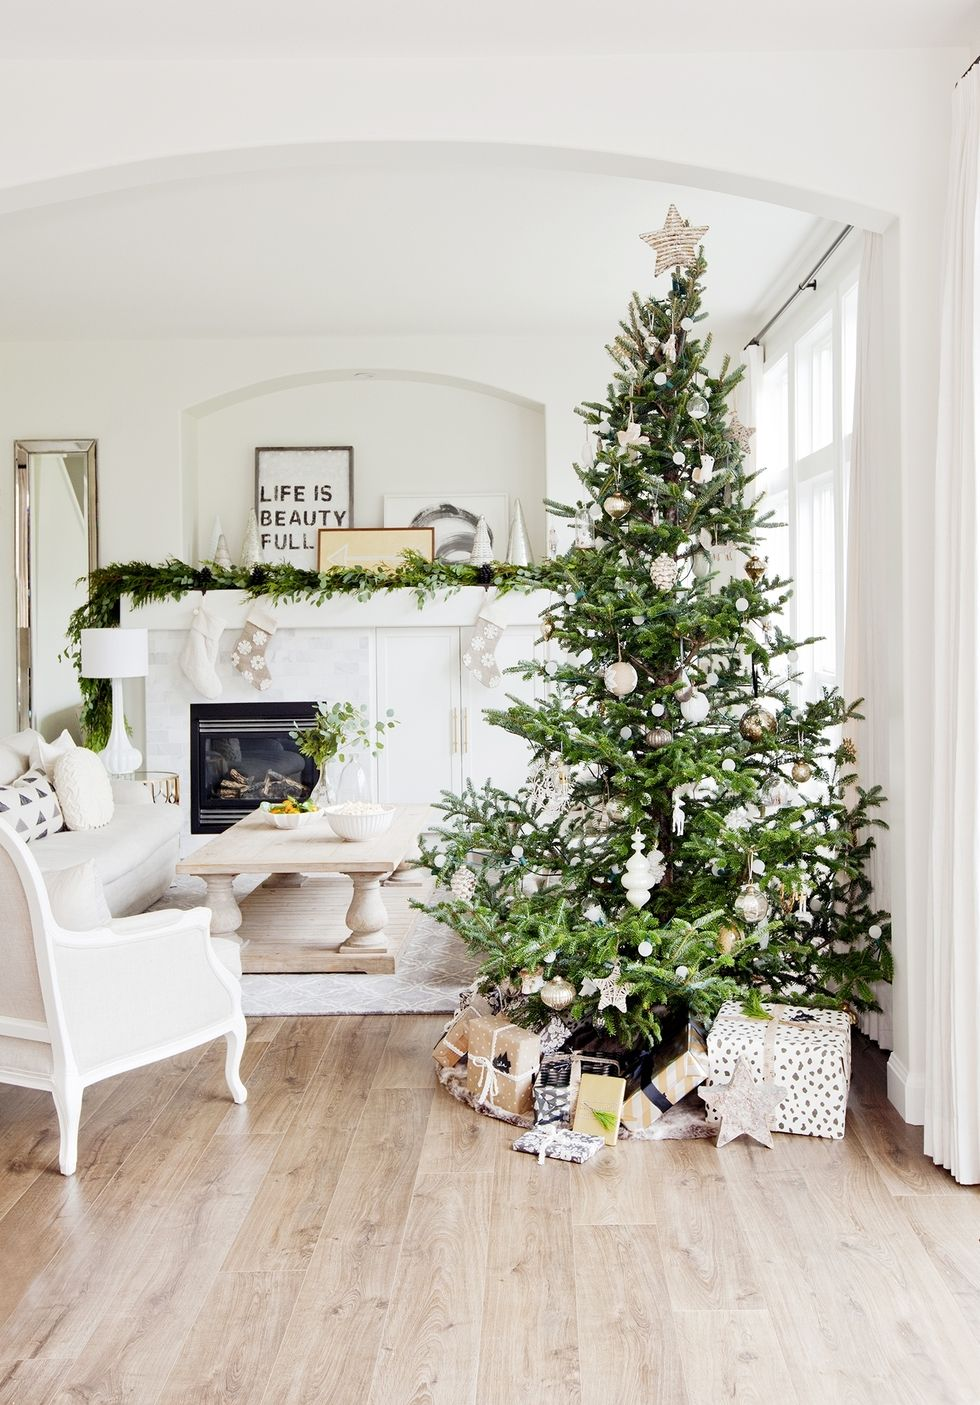 Christmas-Decor-Trends-2017-3.jpg